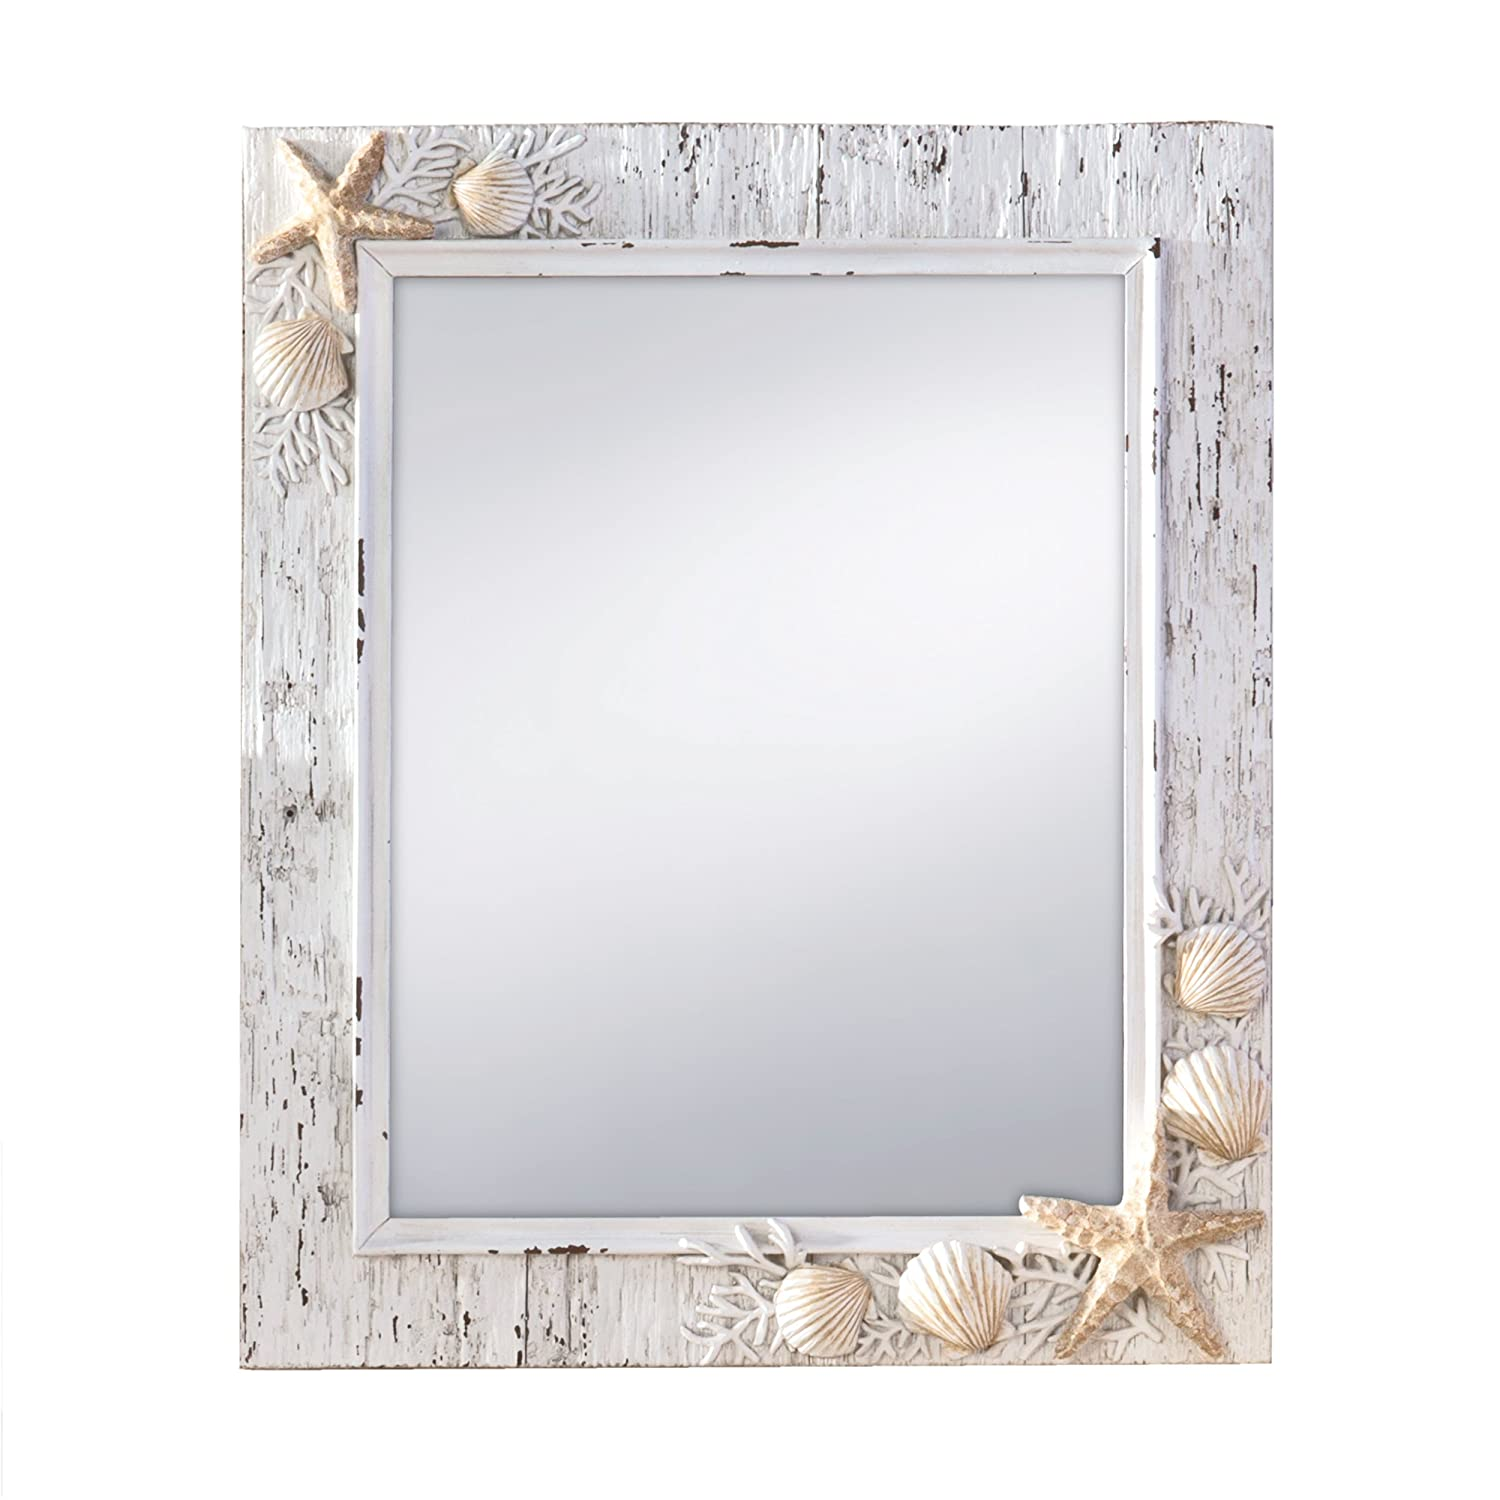 Amazon.com: Prinz Sand Piper Mirror With Resin Border And Seashells And  Starfish Accents: Home U0026 Kitchen